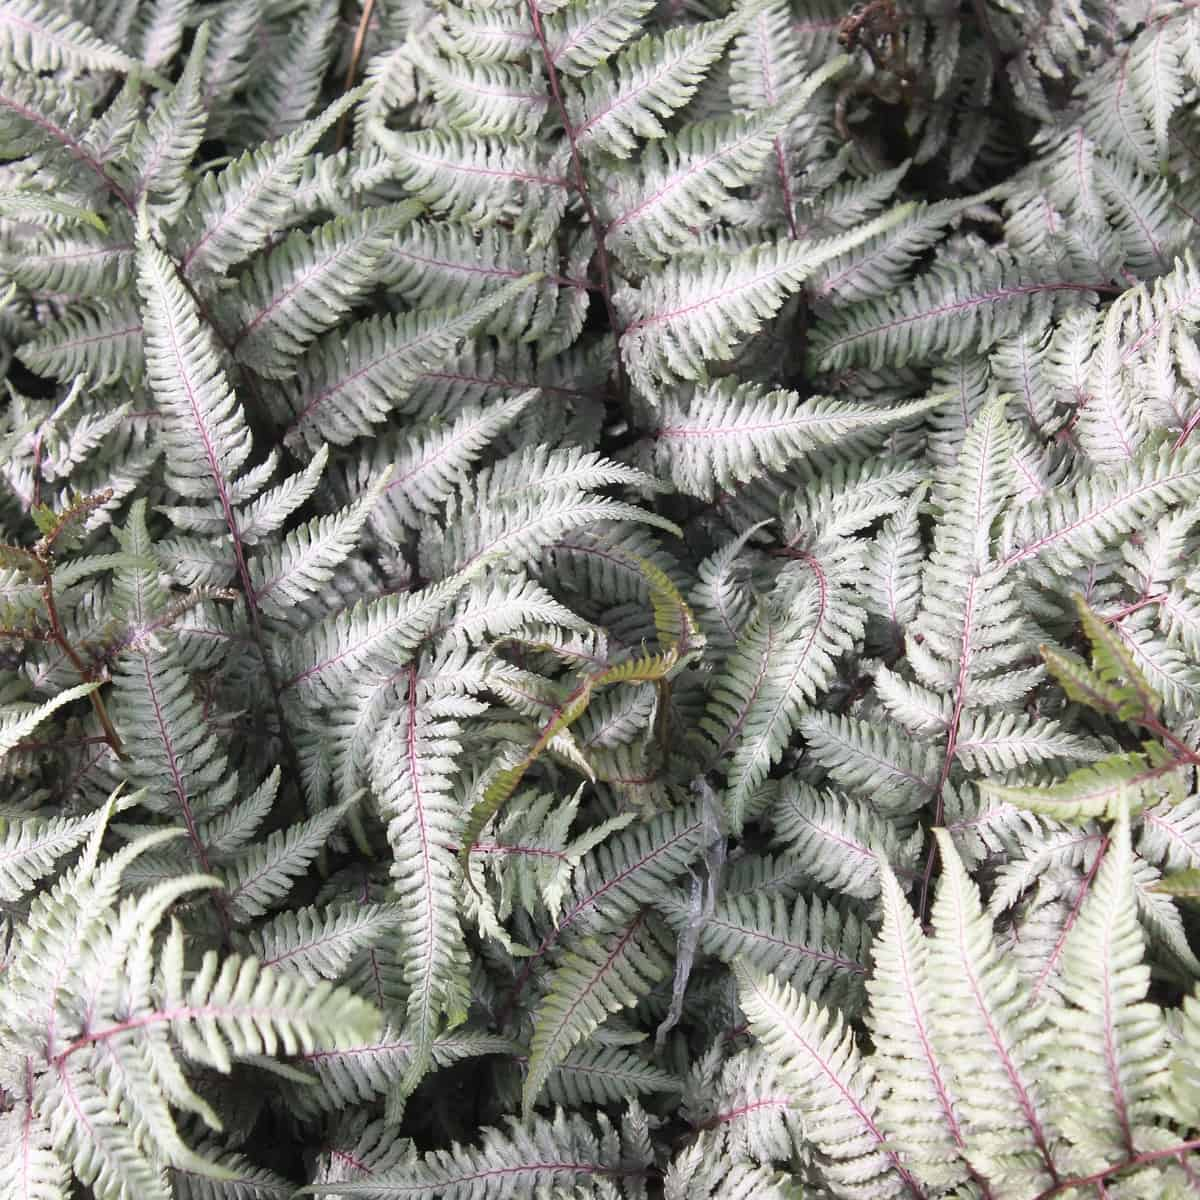 Japanese painted ferns are hardy perennials that love shade